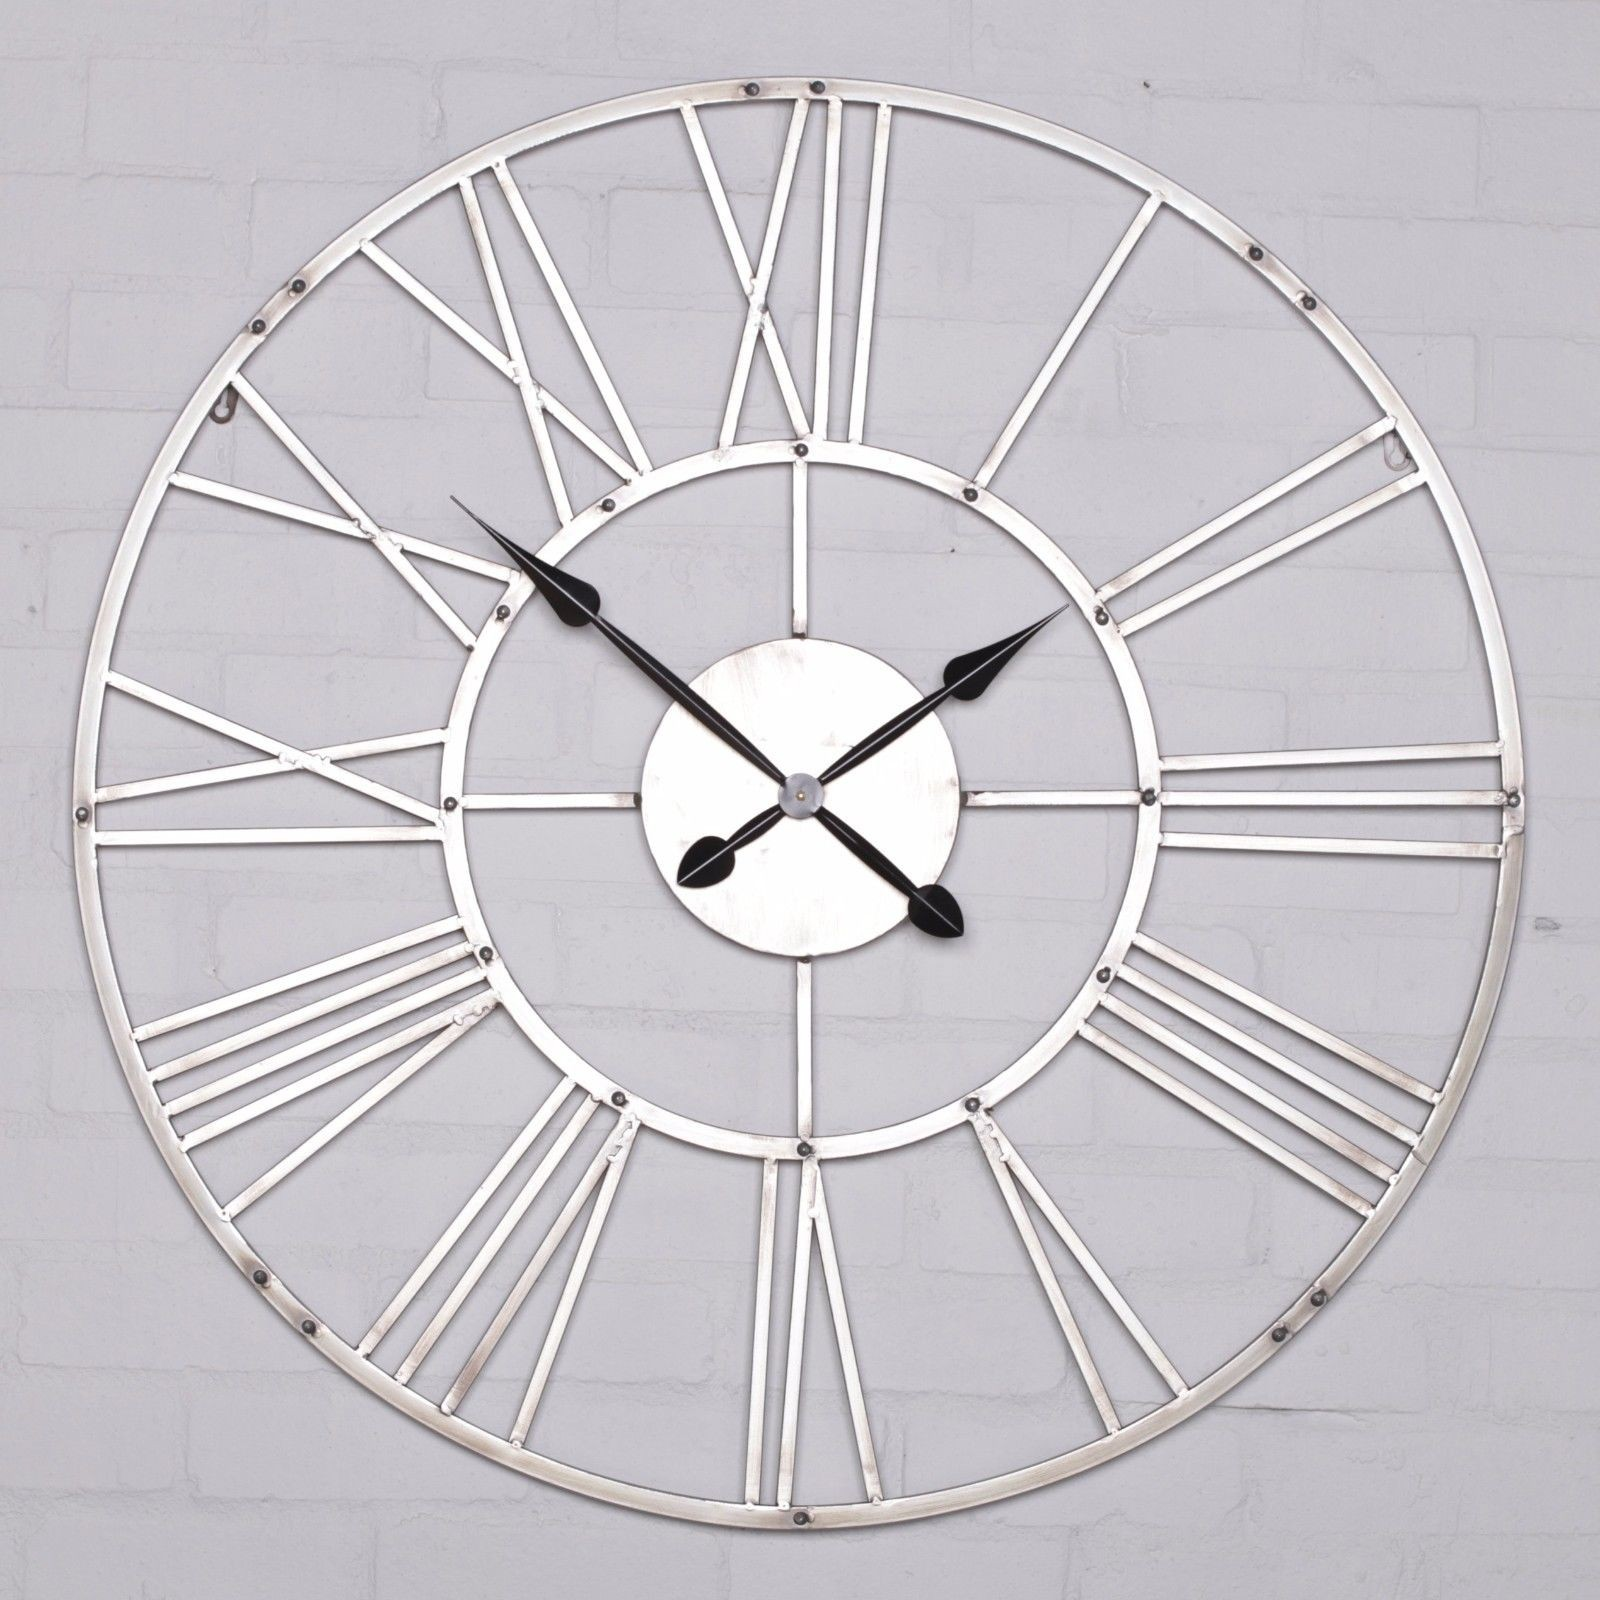 Aged Silver Metal Wall Clock Furniture La Maison Chic